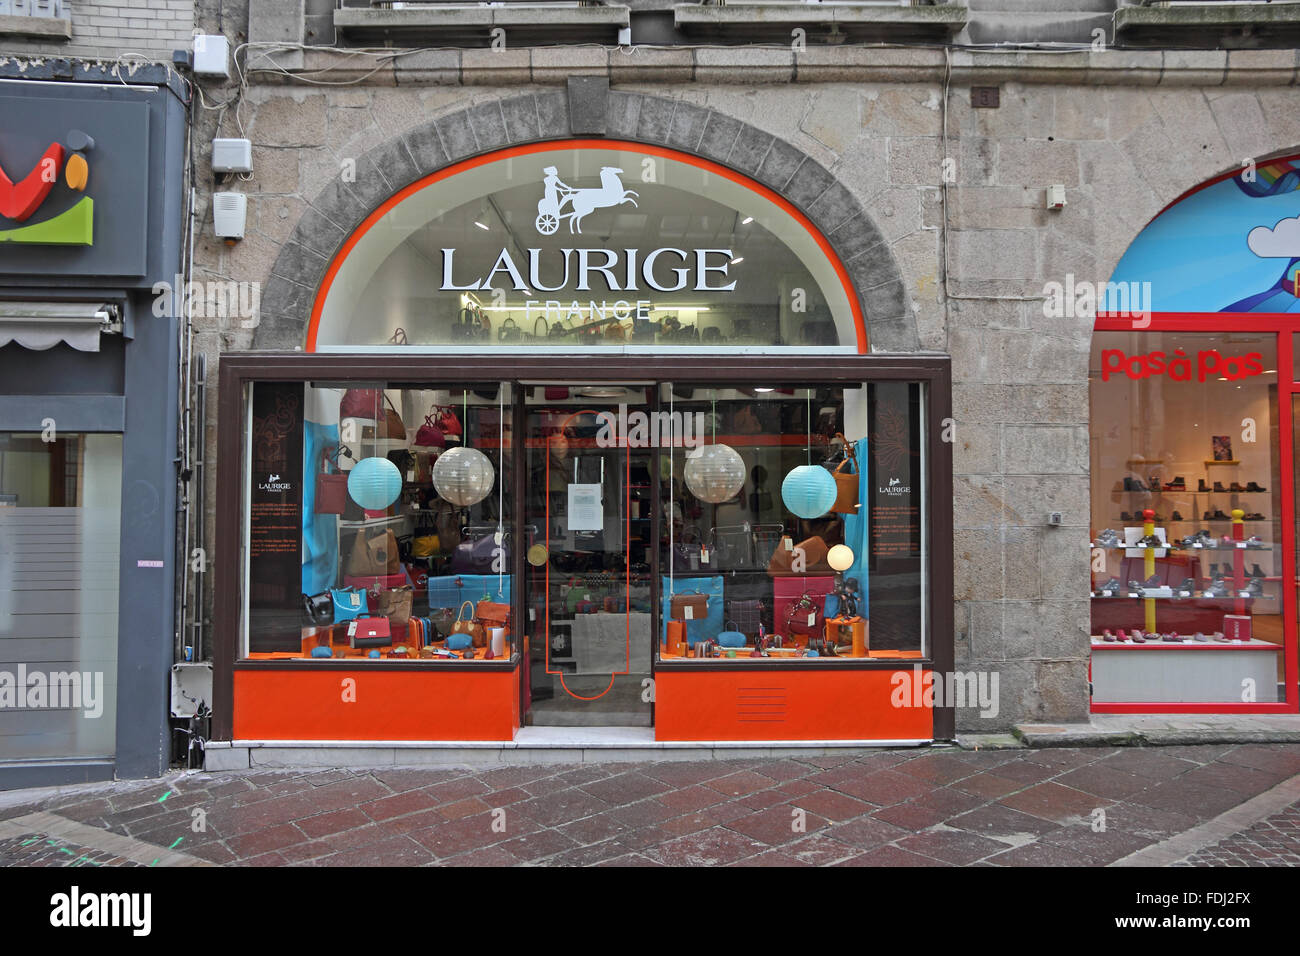 Laurige hand crafted leather goods shop, Limoges, France - Stock Image